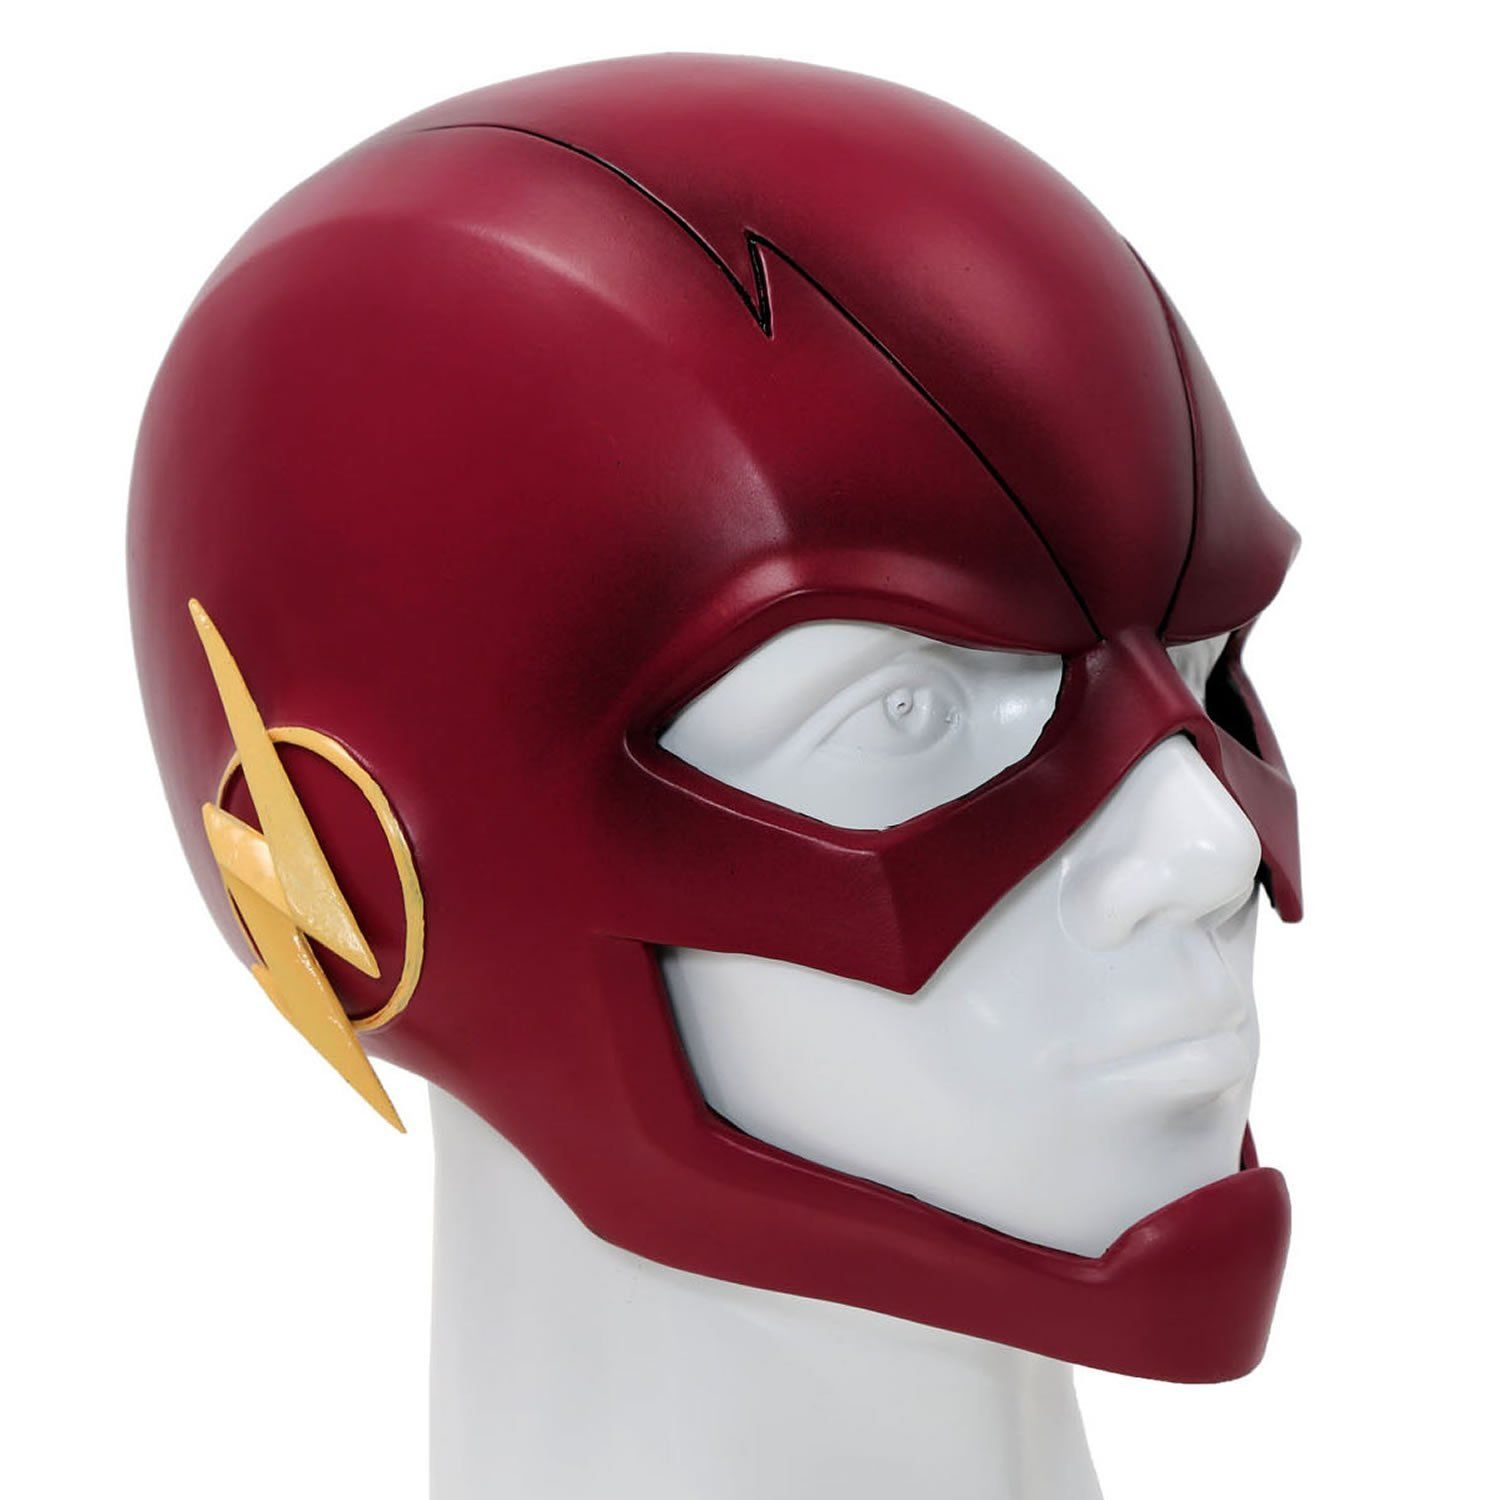 Amazon.com: Flash Mask Cosplay Helmet PVC Red Mask For Adult ...